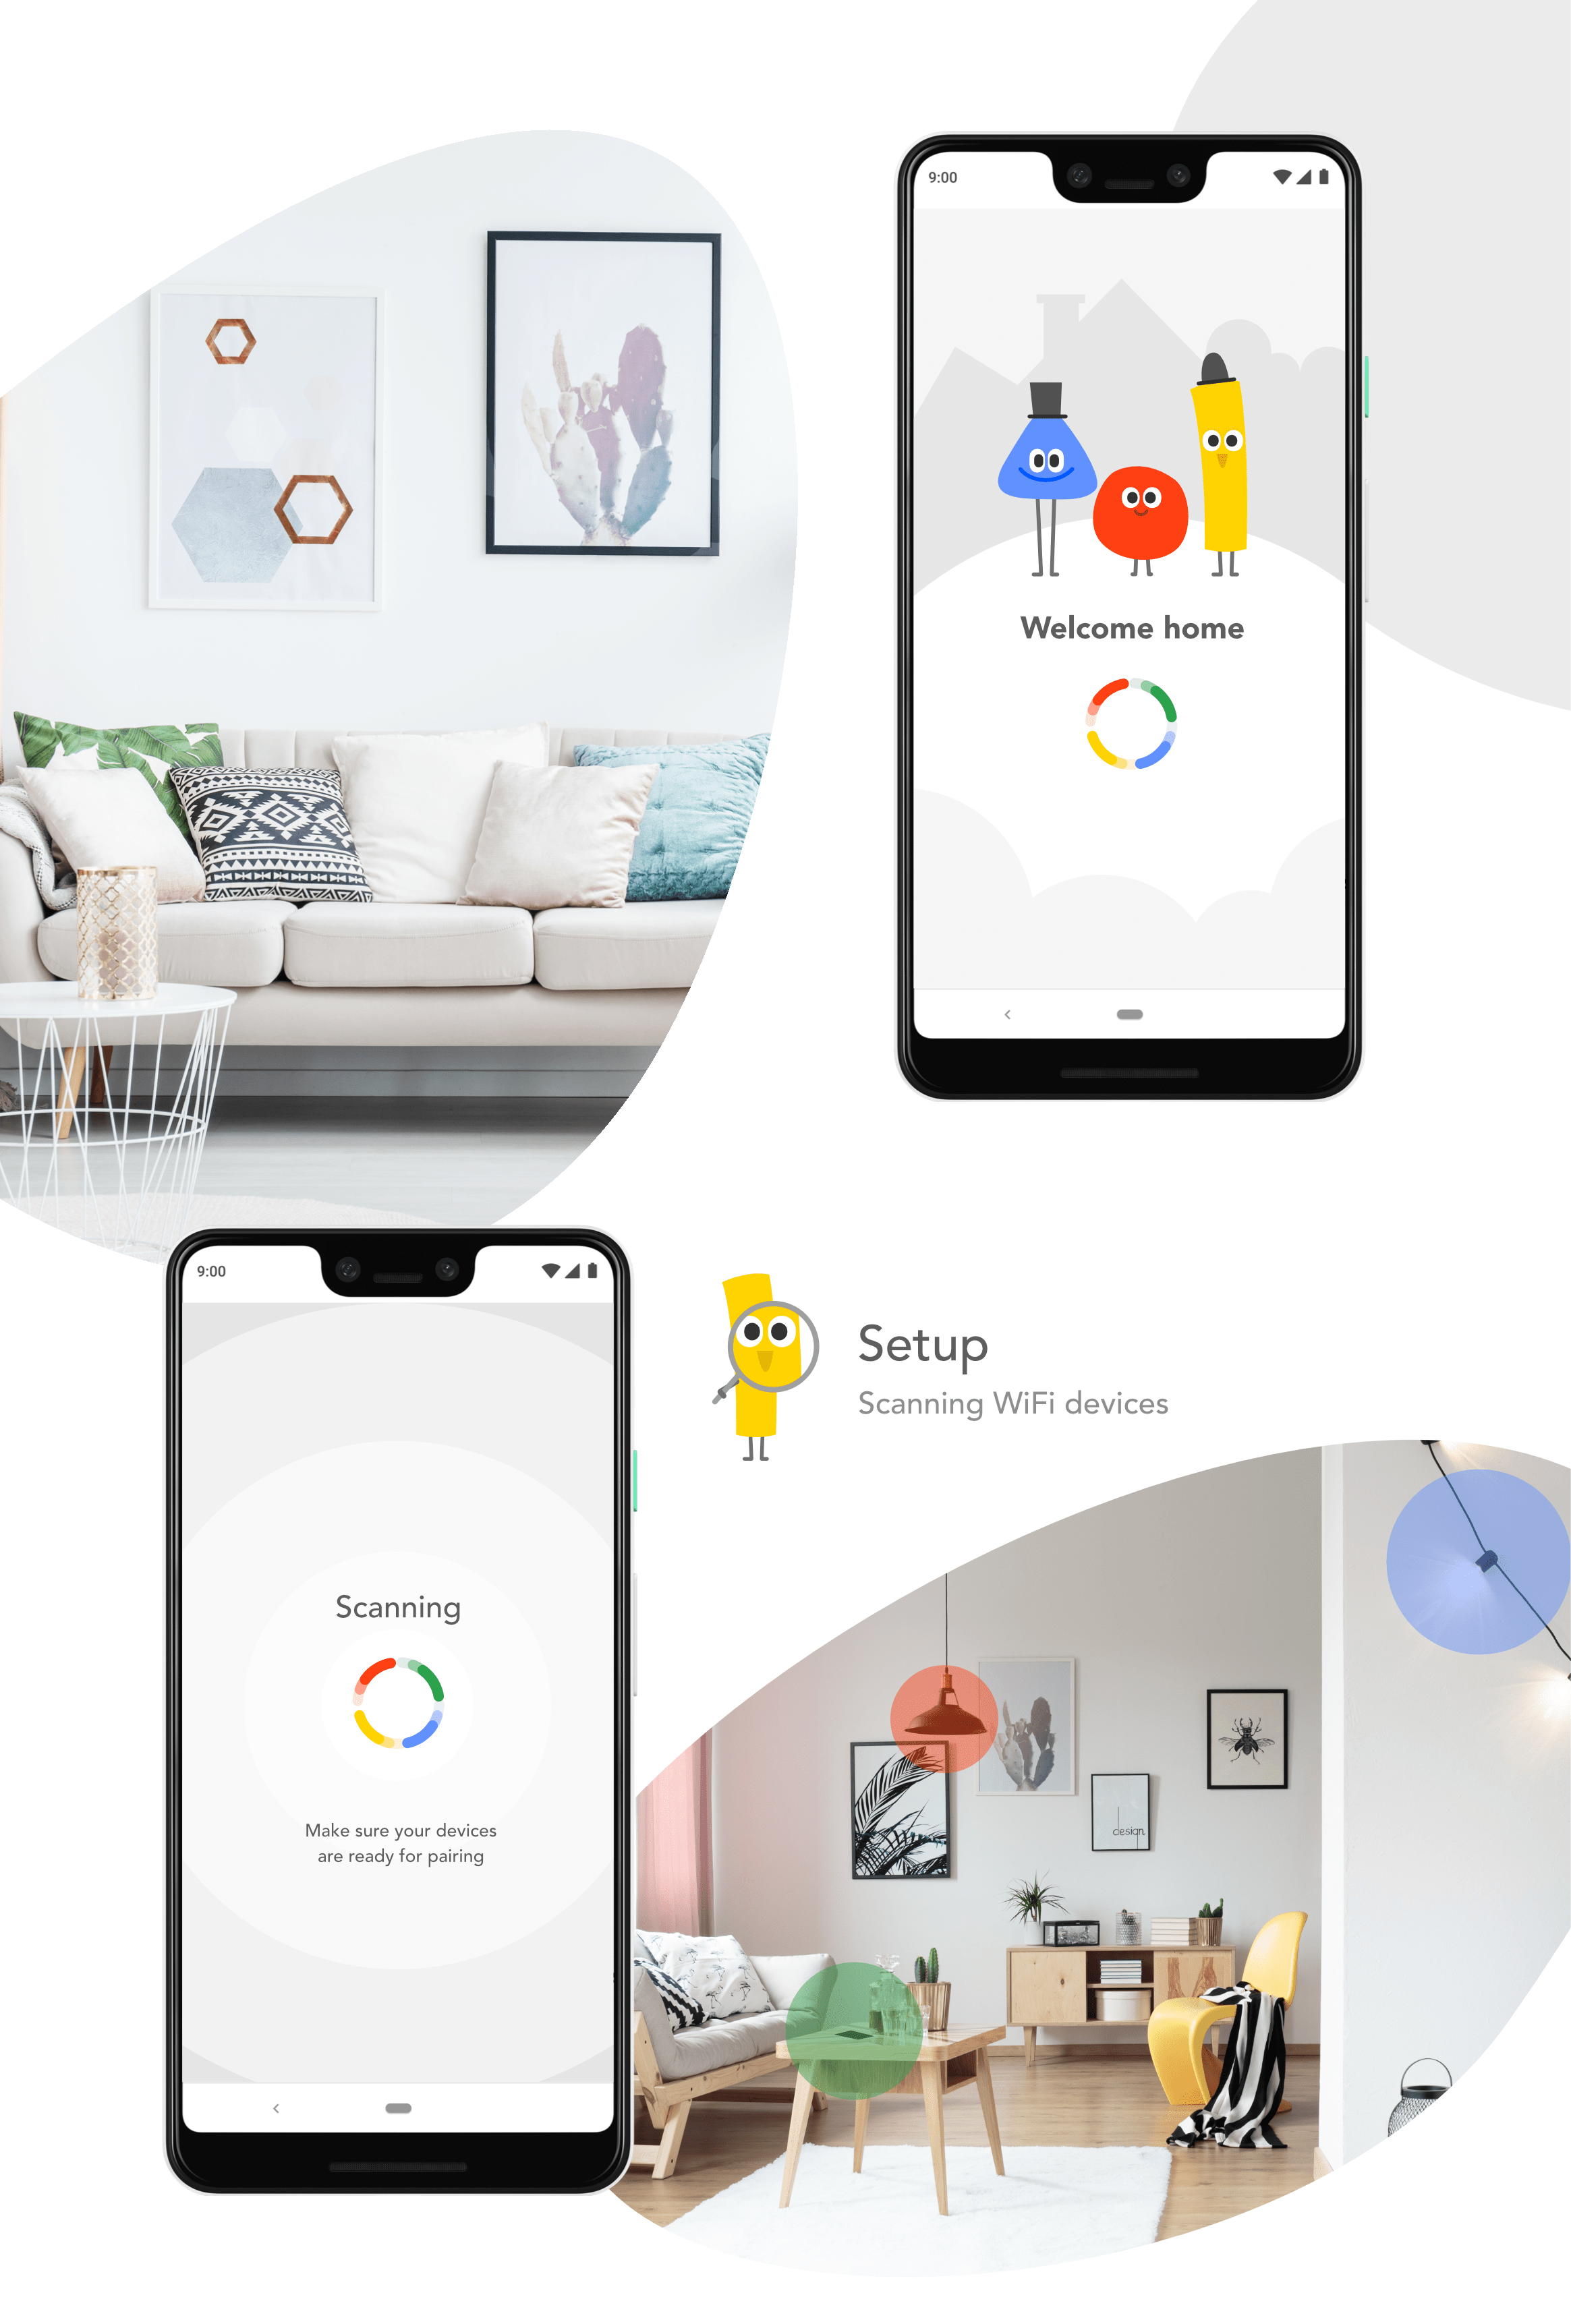 Google home assistant extension by Meg Wehrlen. UIUX page including screens, wireframe, userflow. Screens for loading, scanning, user settings, grouping, commands,overlays, screen control